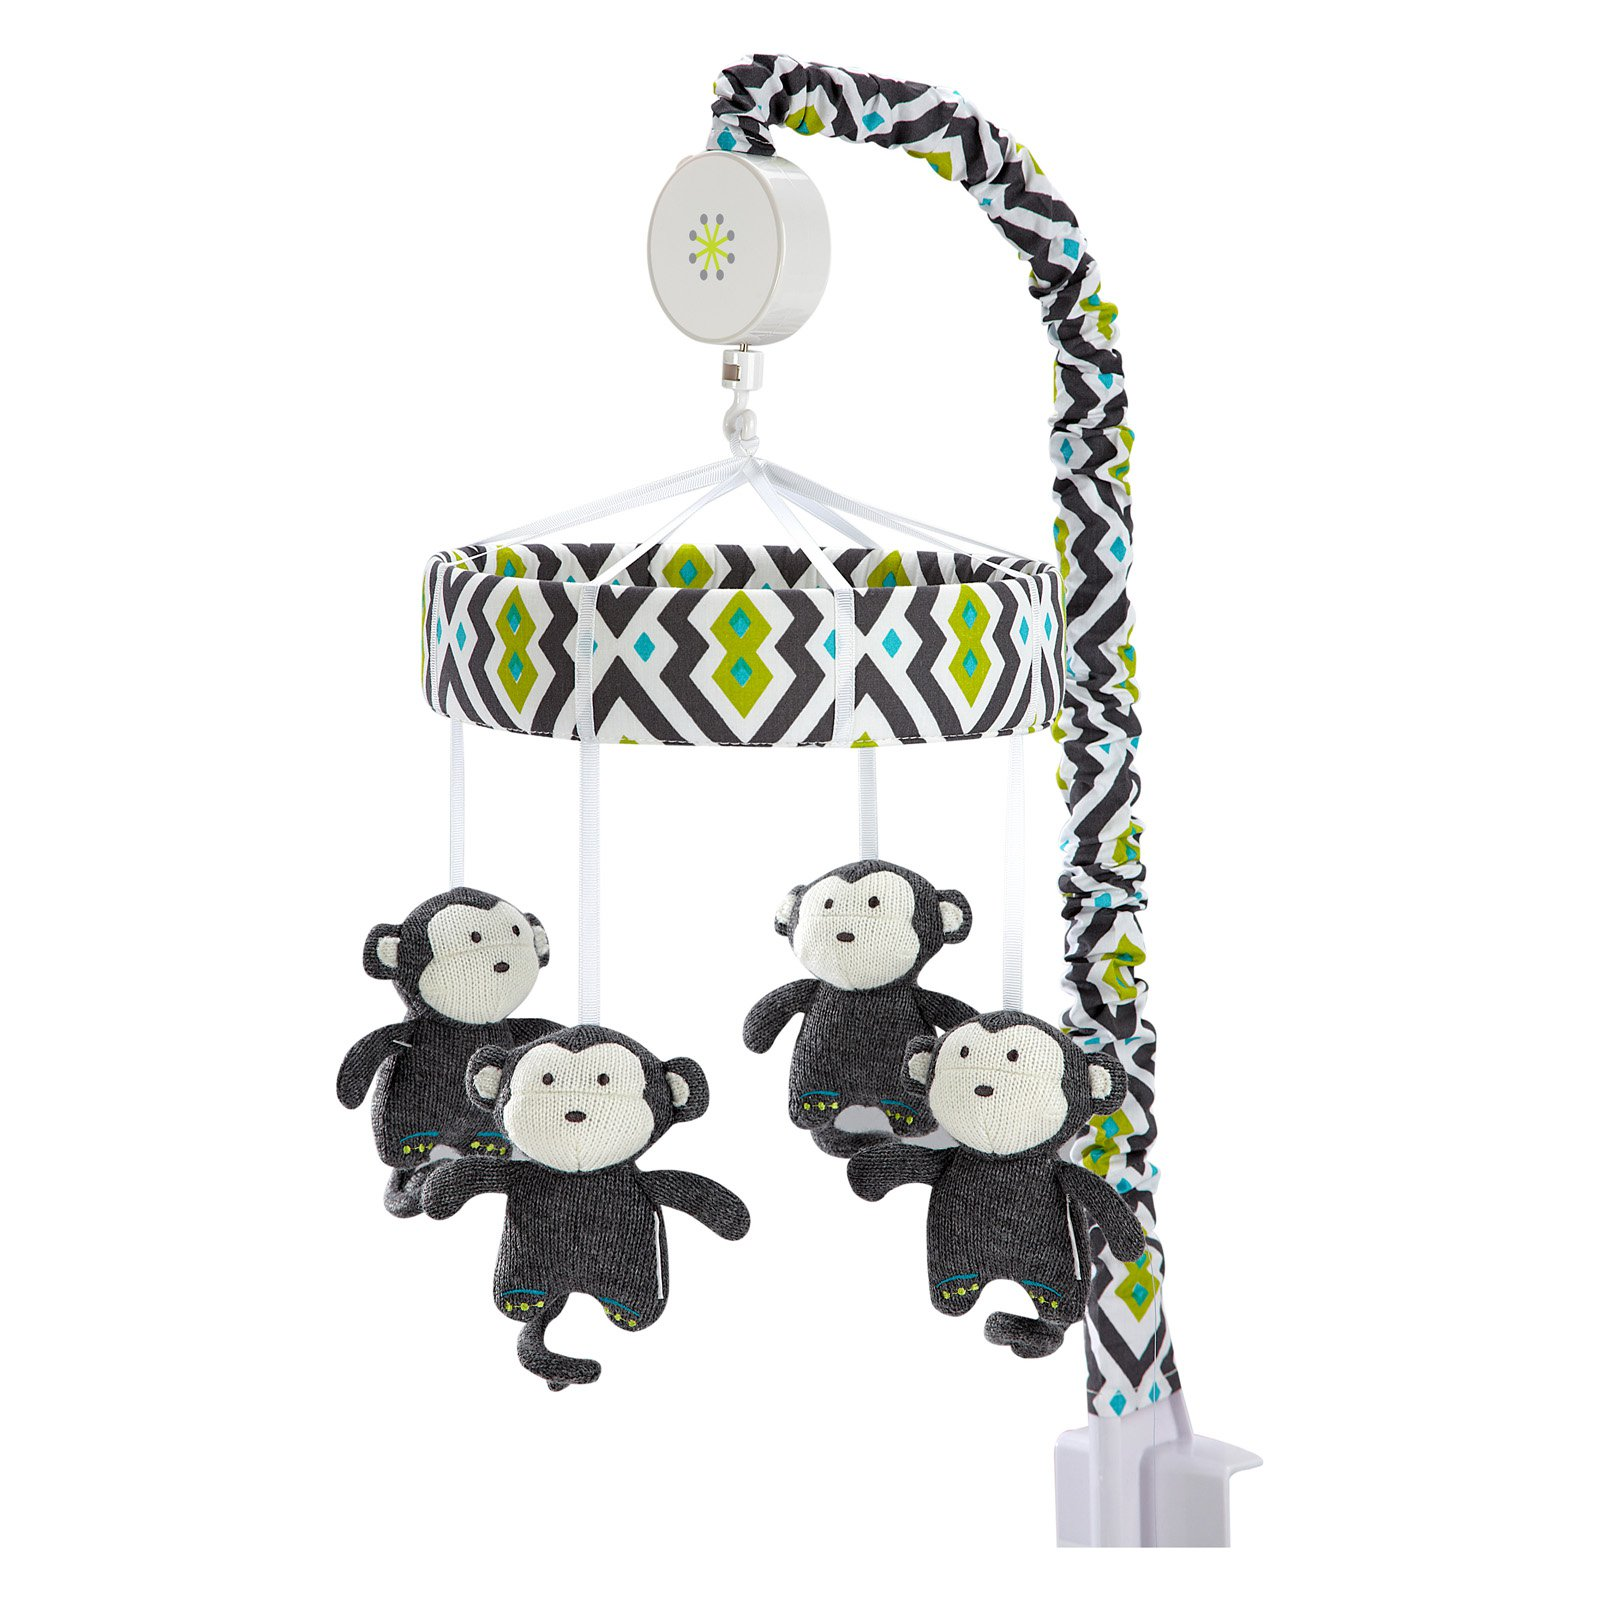 Jonathon Adler Happy Chic Baby Safari Monkey Musical Mobile by Jonathon Adler